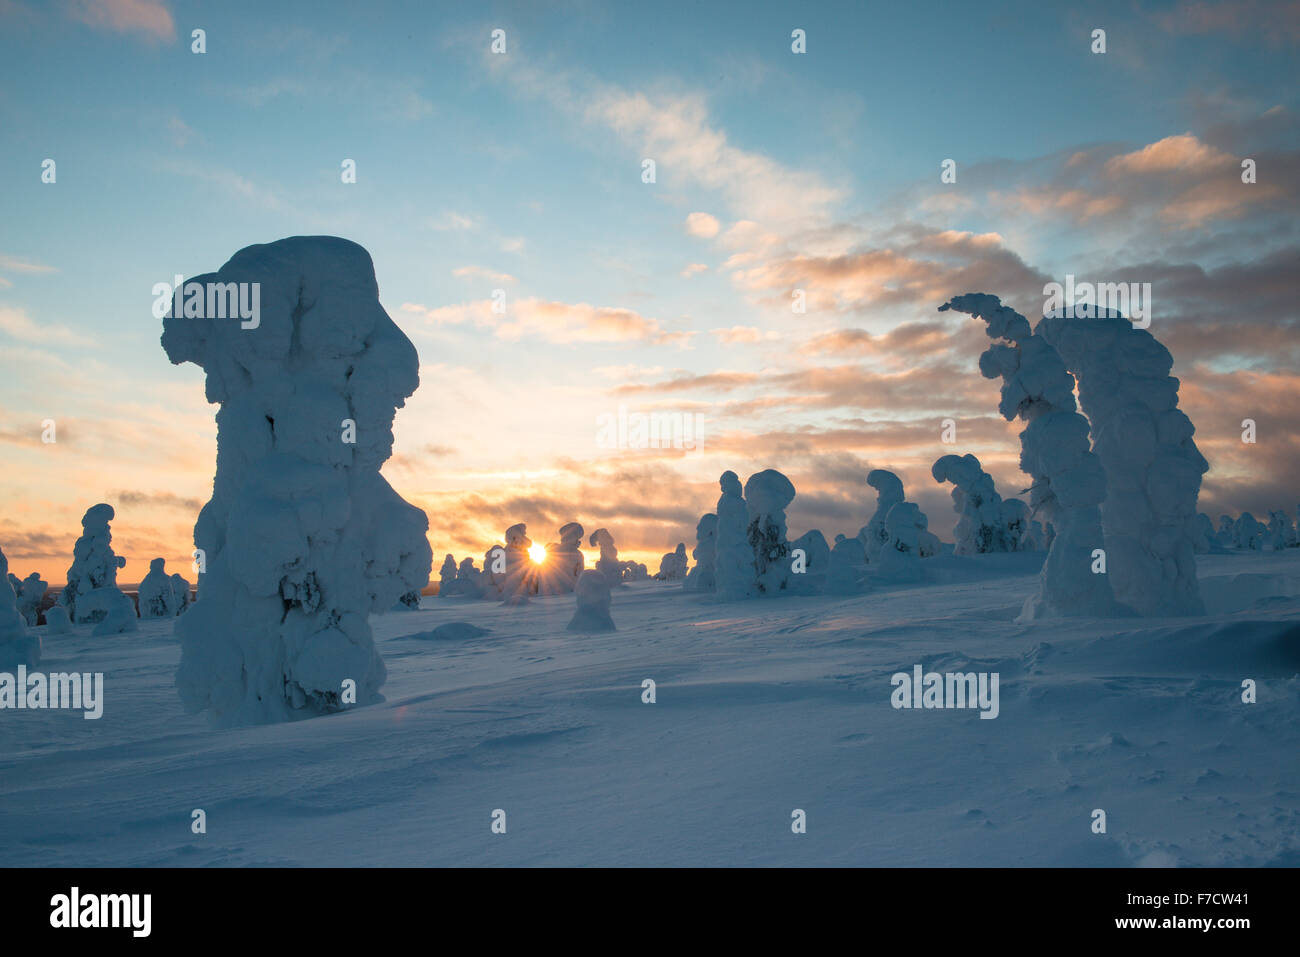 Snow-covered spruces, fjell in winter, Riisitunturi National Park, Posio, Lapland, Finland Stock Photo